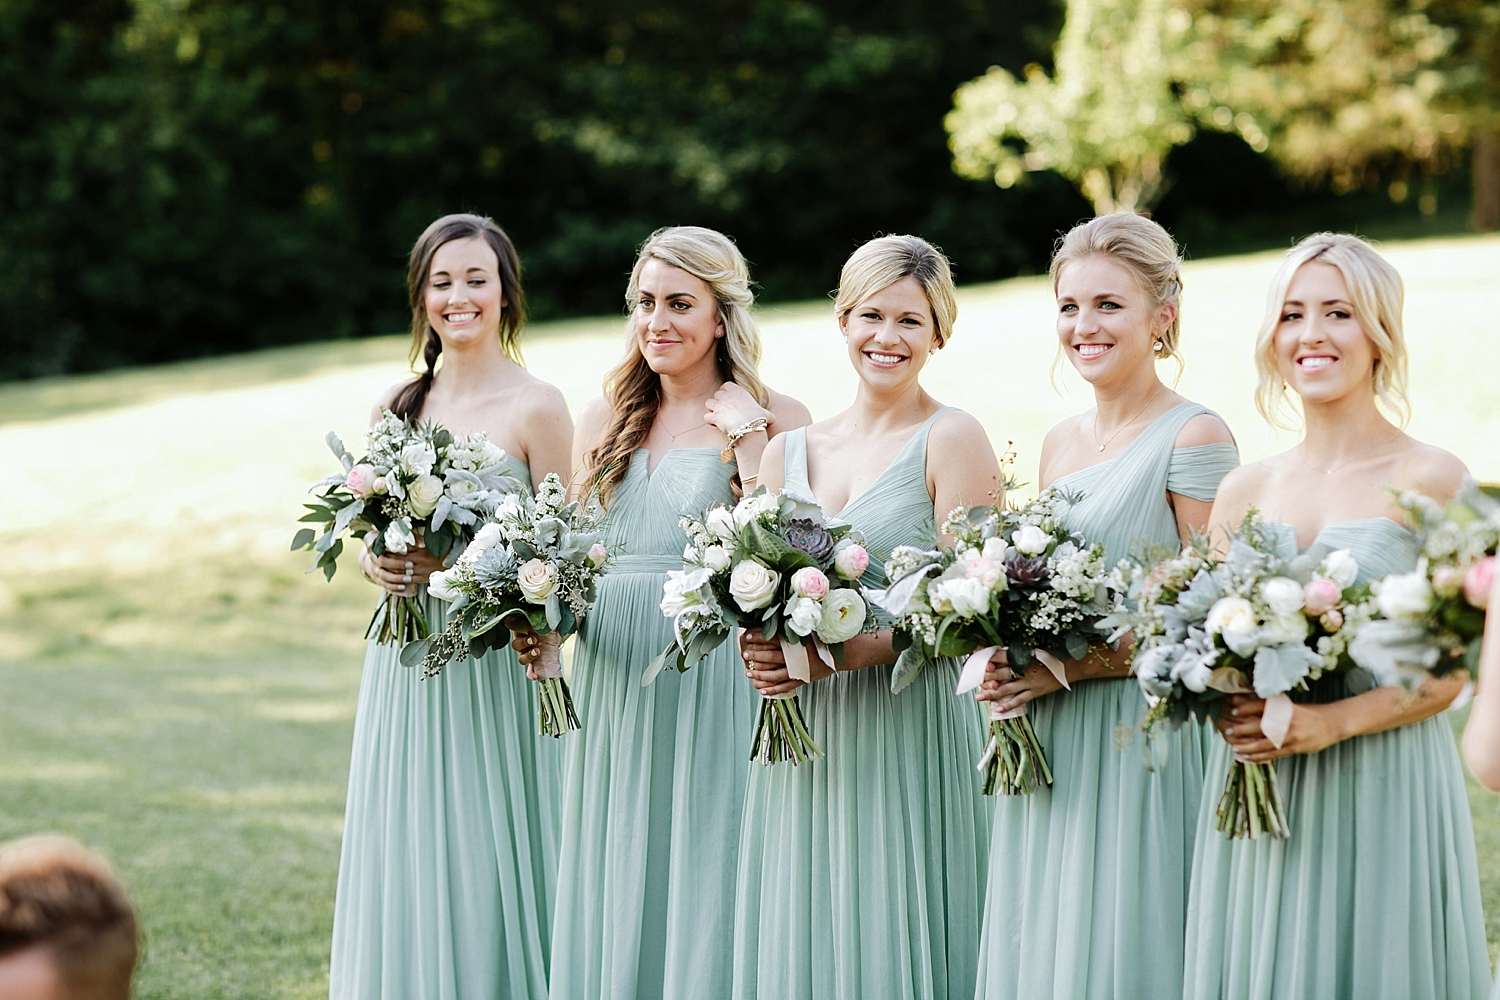 bridesmaids with bouquets standing during ceremony